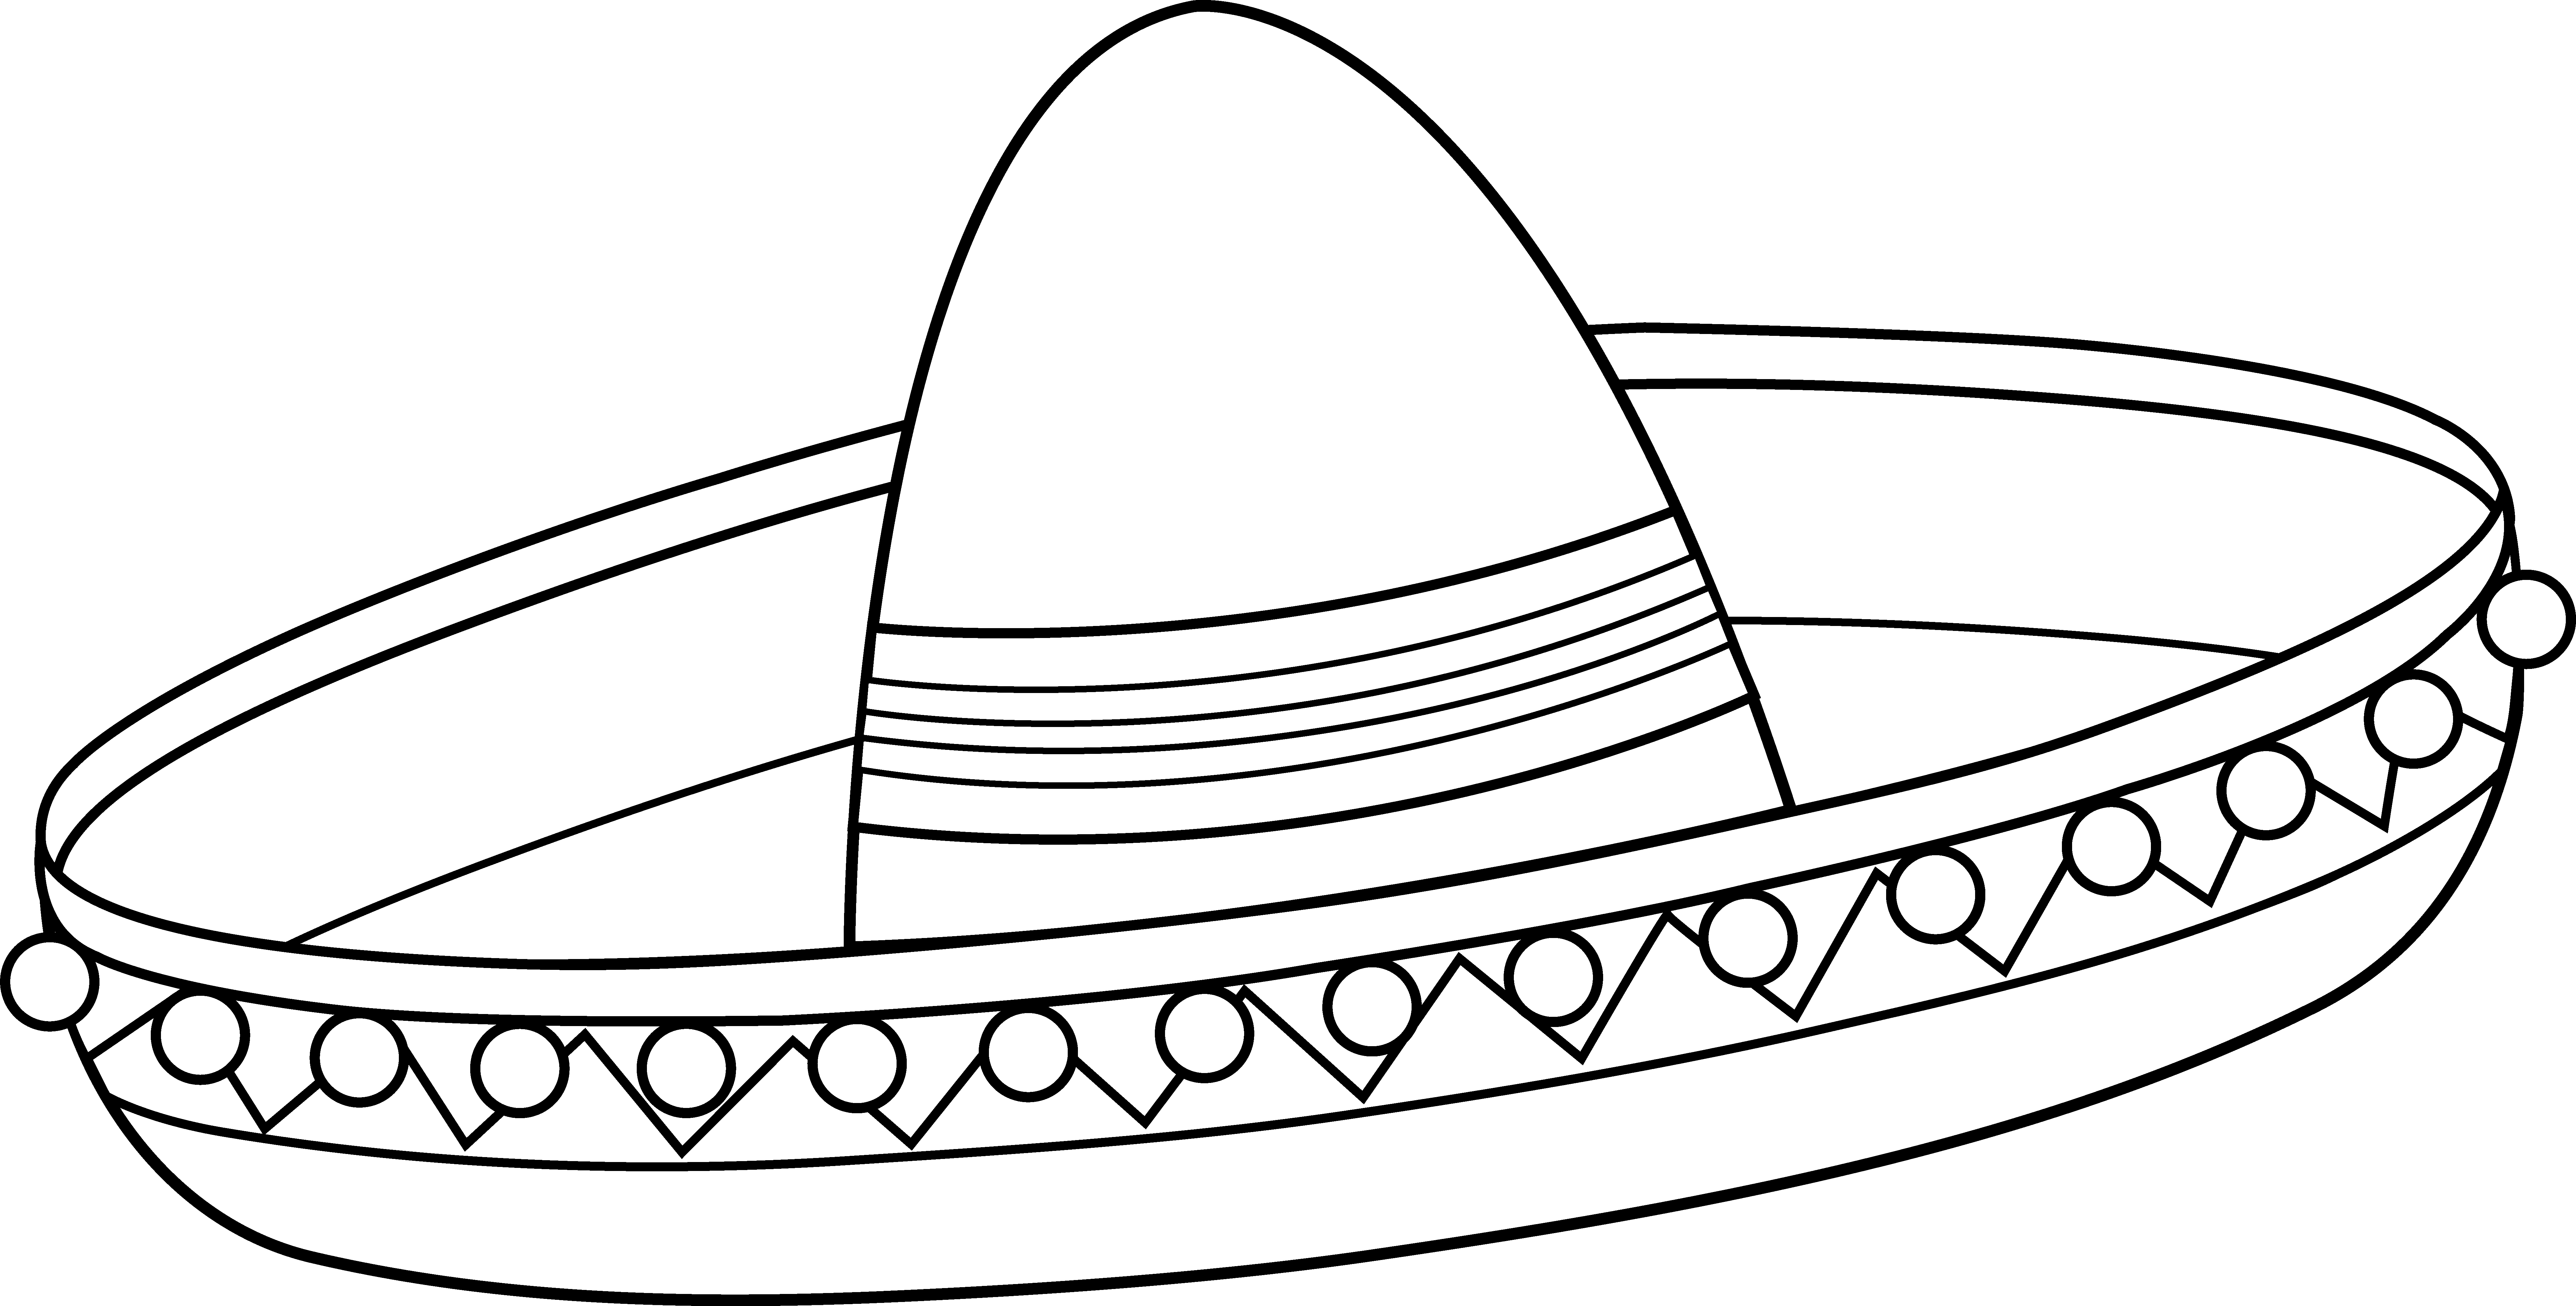 Cap clip colouring. Sombrero drawing at getdrawings